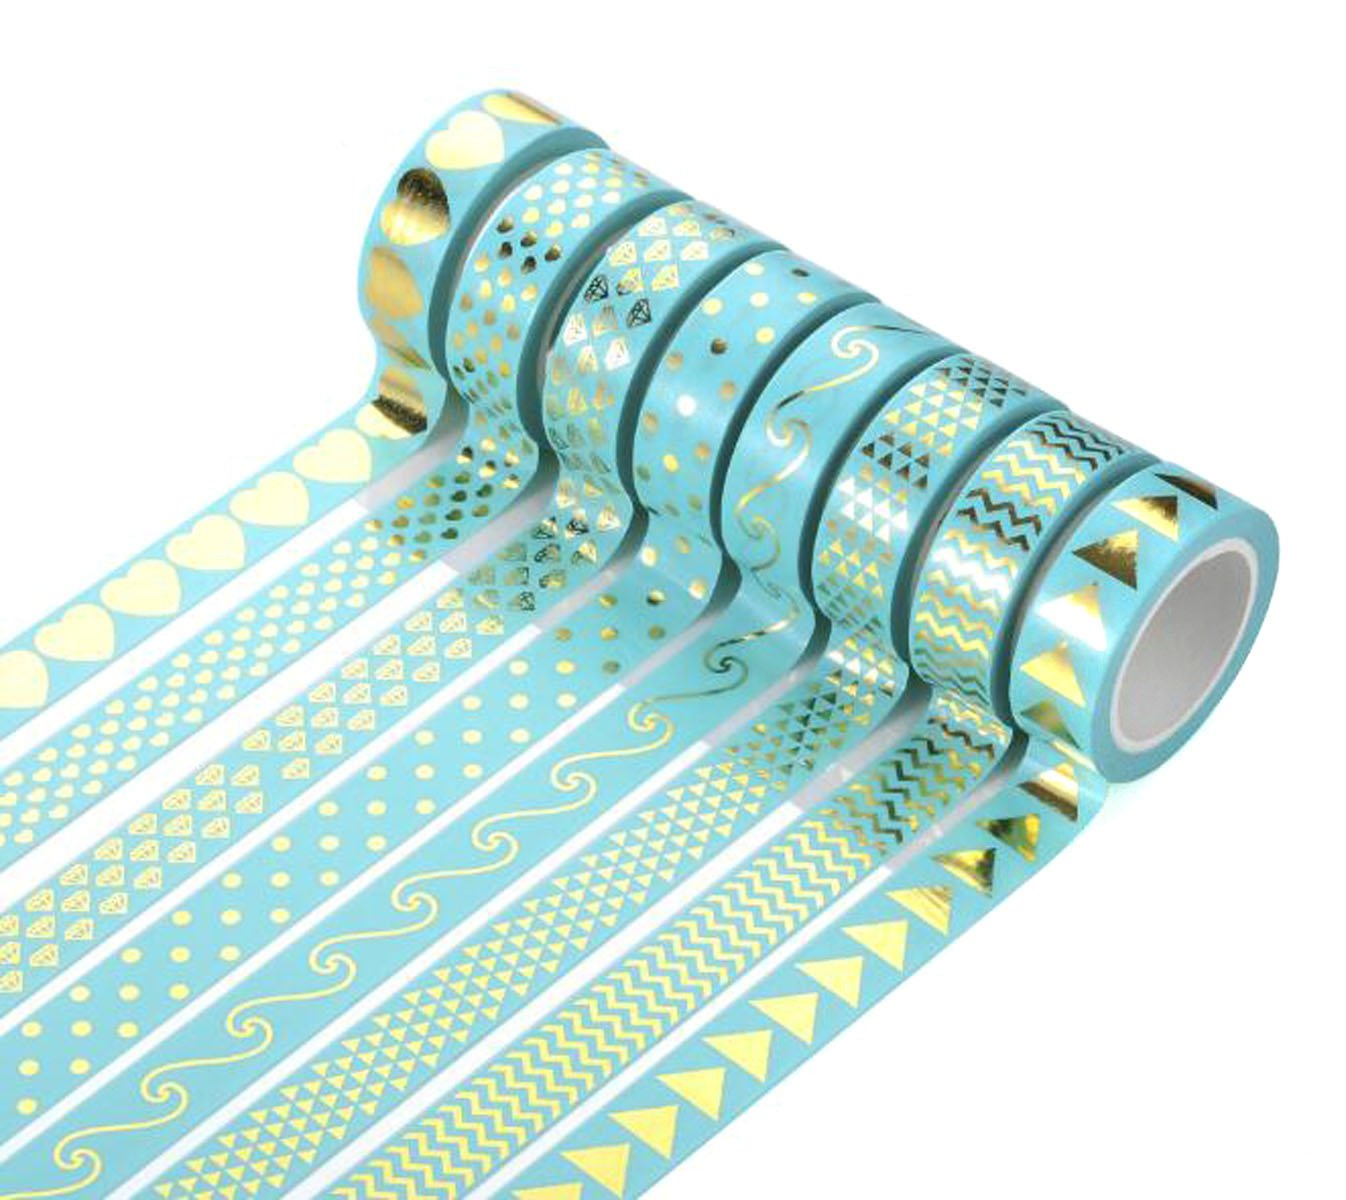 8 Roll Bronzing Washi Tape - Length 32.8ft/Roll - 0.59 Width Bright Foil Gold Masking Tape for DIY Hand Account Notebook Decoration and Gift Nicedmm